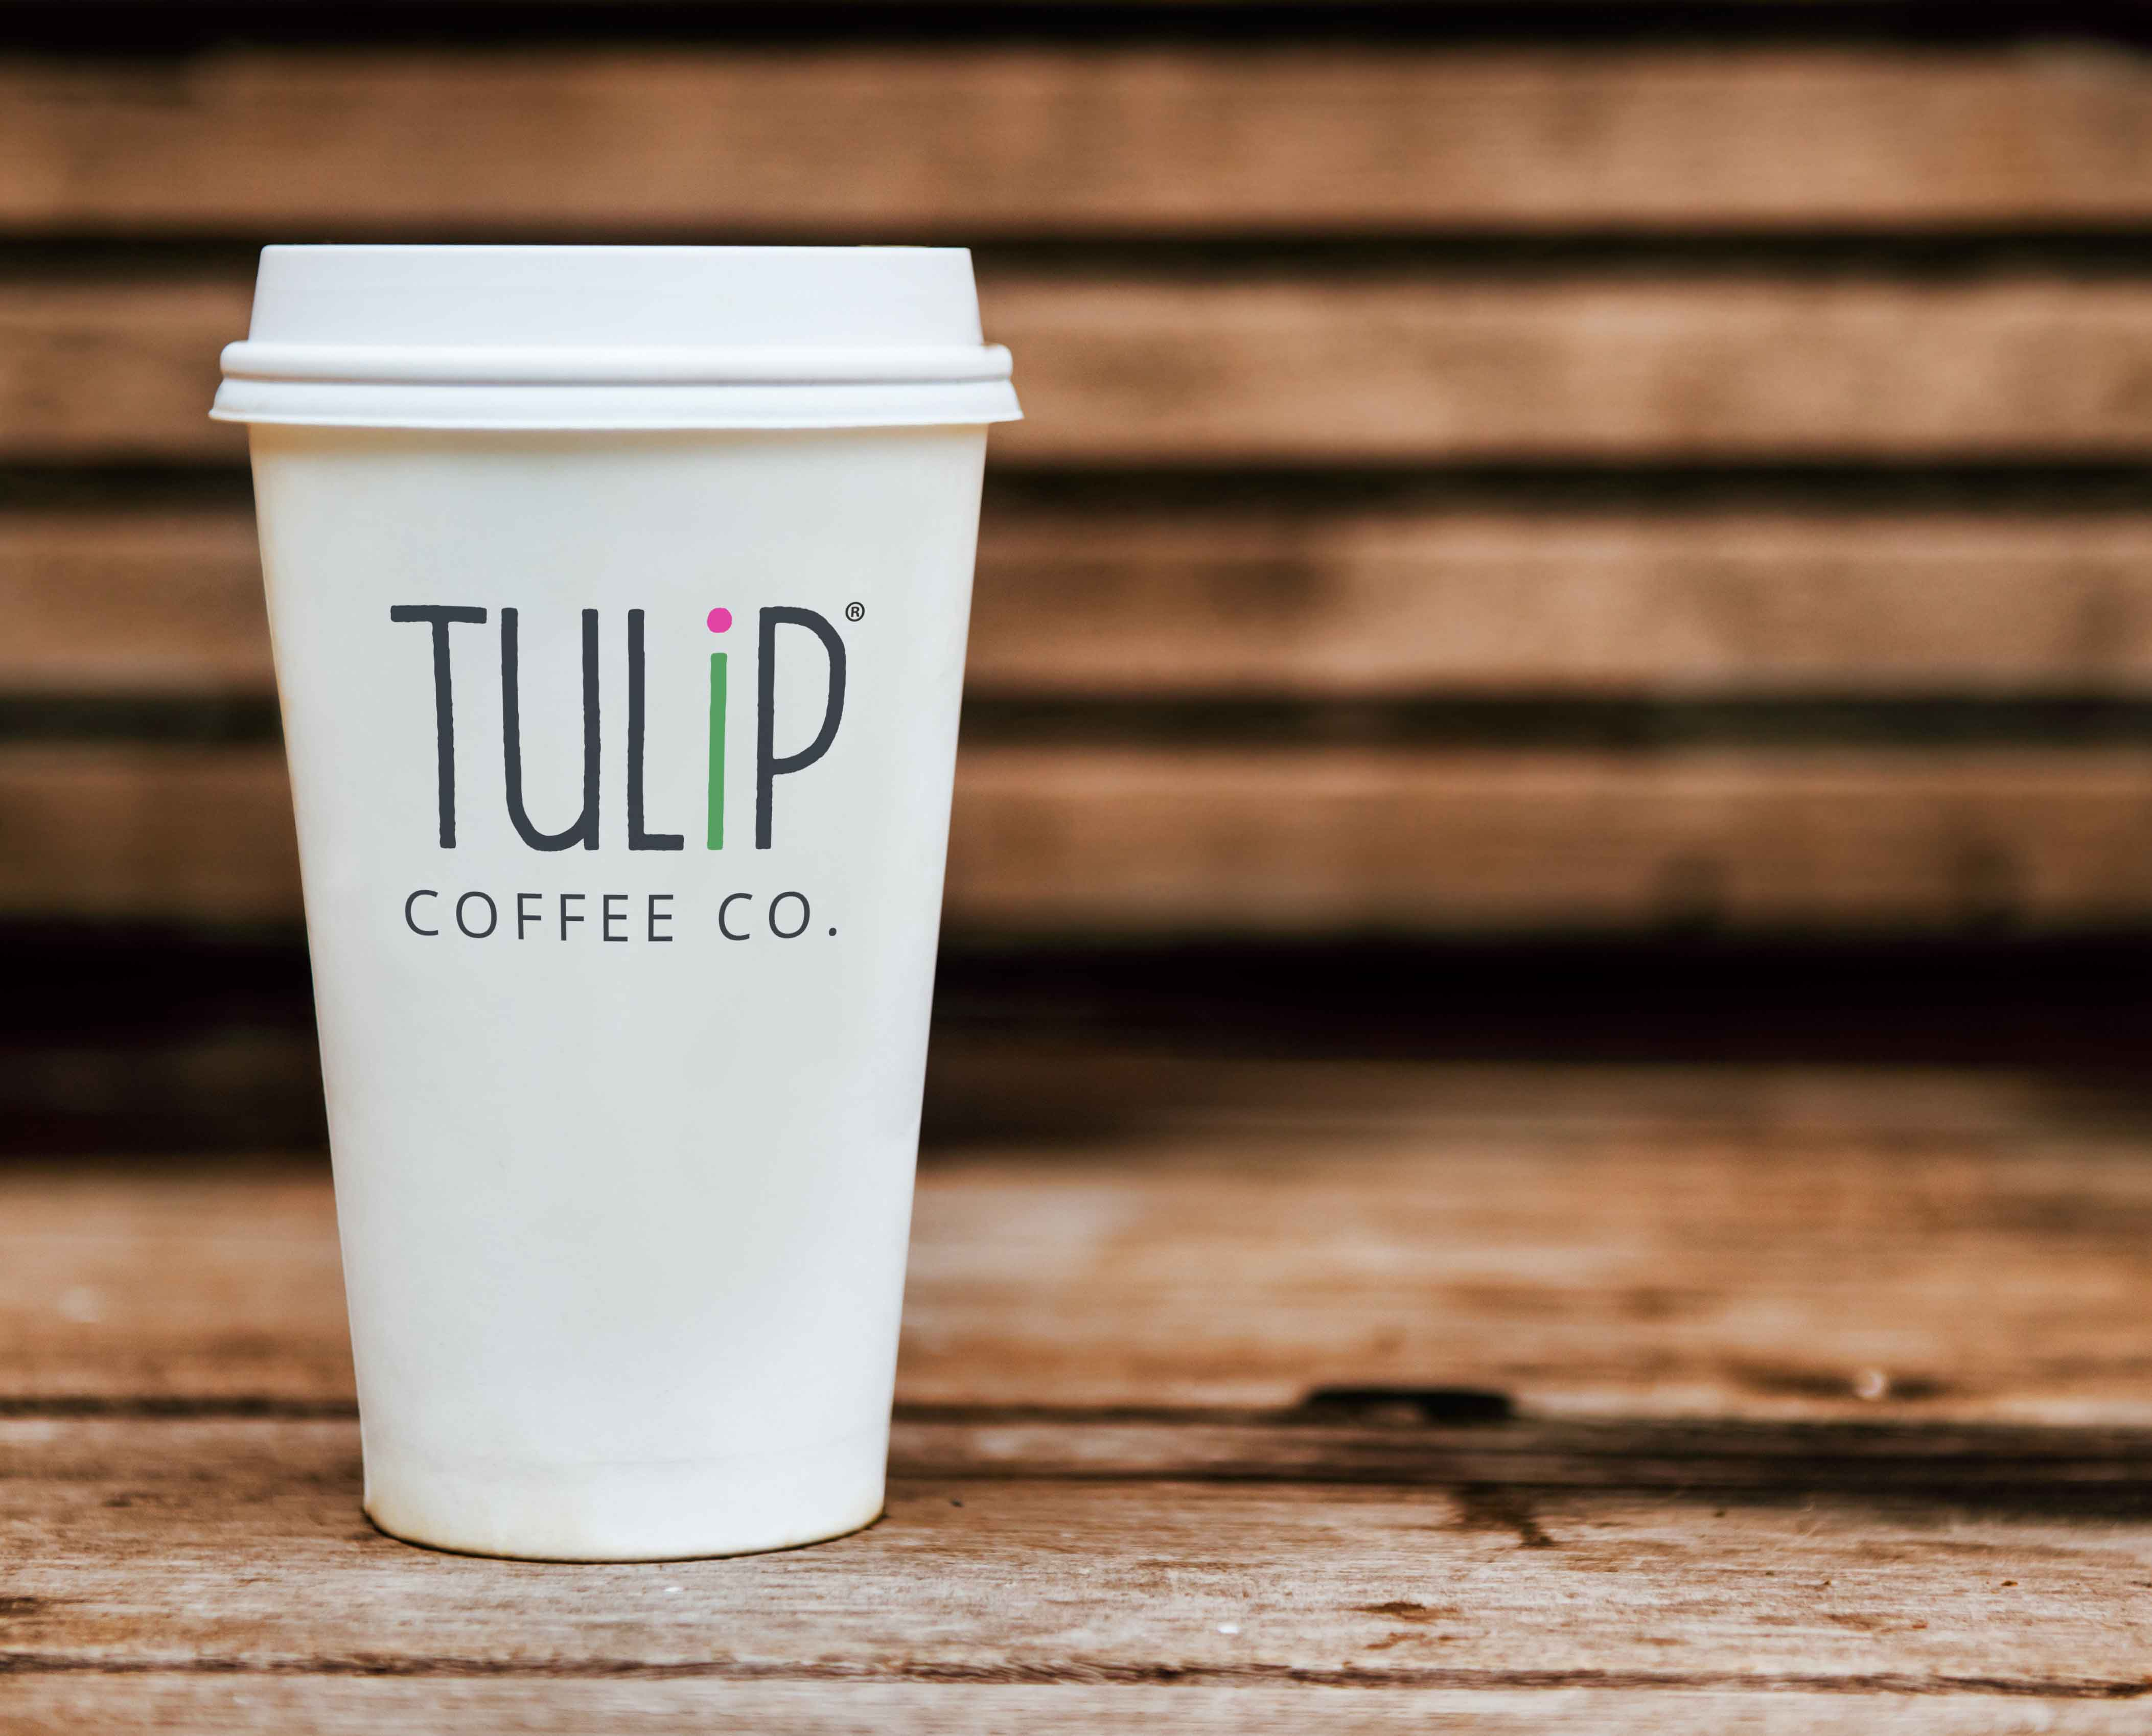 Tulip Coffee Co.